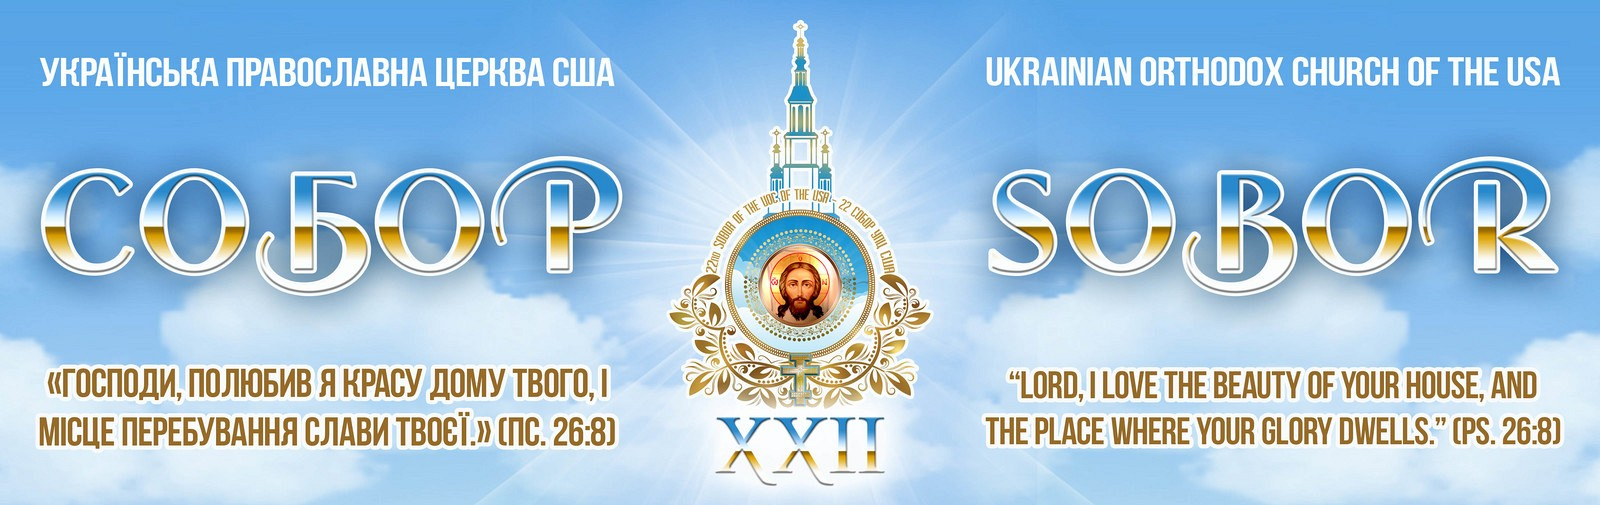 Ukrainian Orthodox Church of the USA - Home